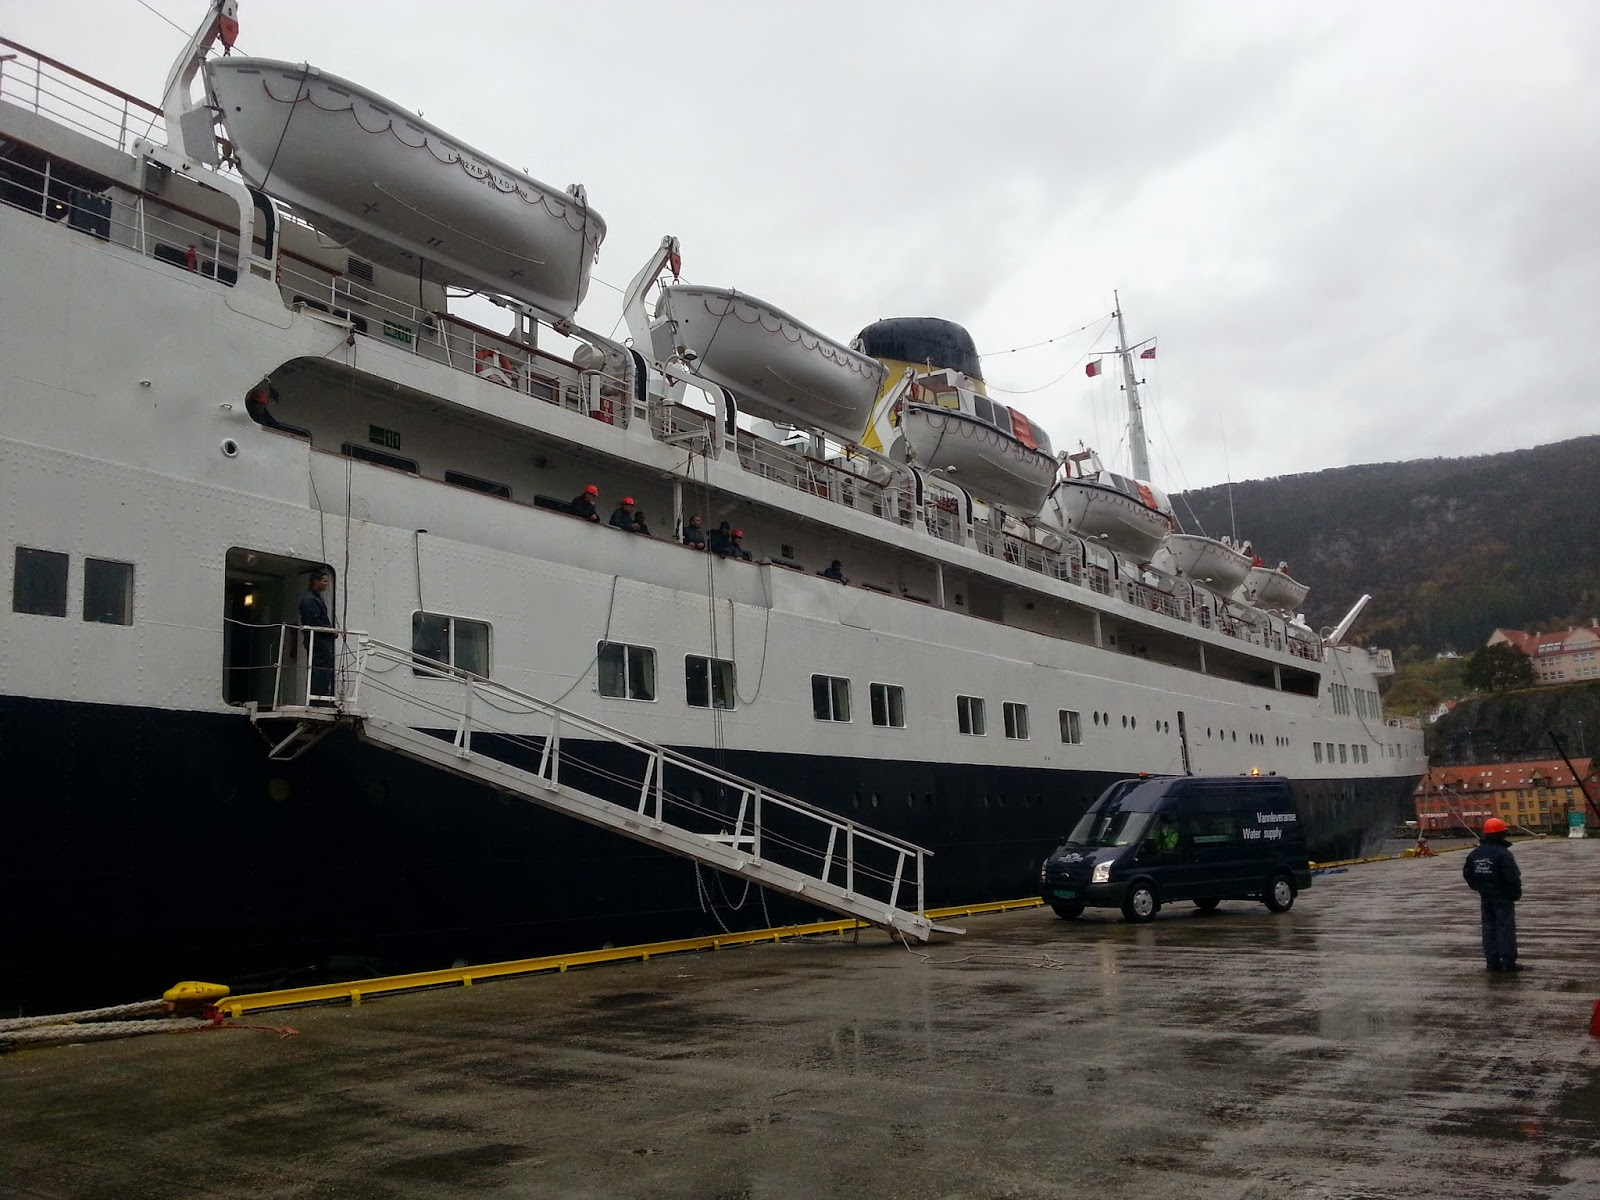 Cruise Ship Funchal in Bergen, Norway